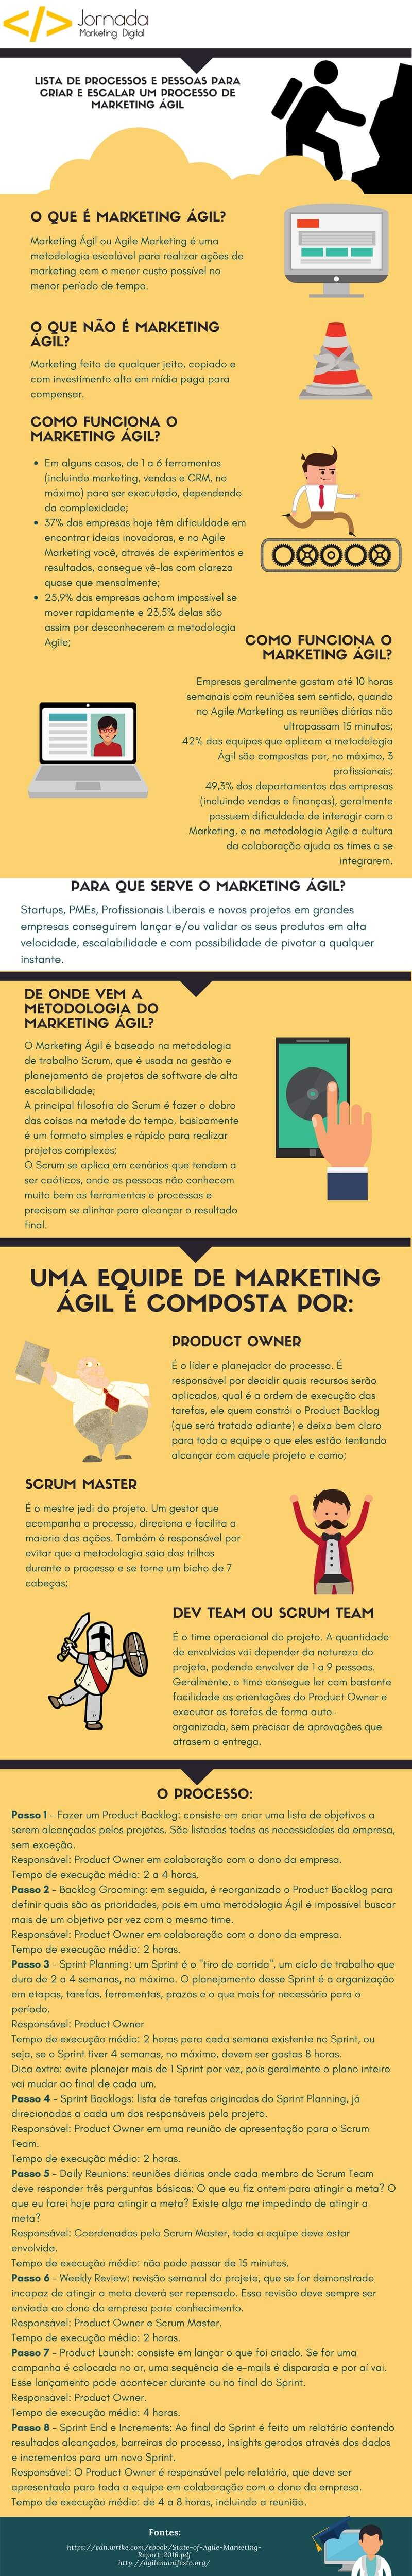 infografico marketing agil startups